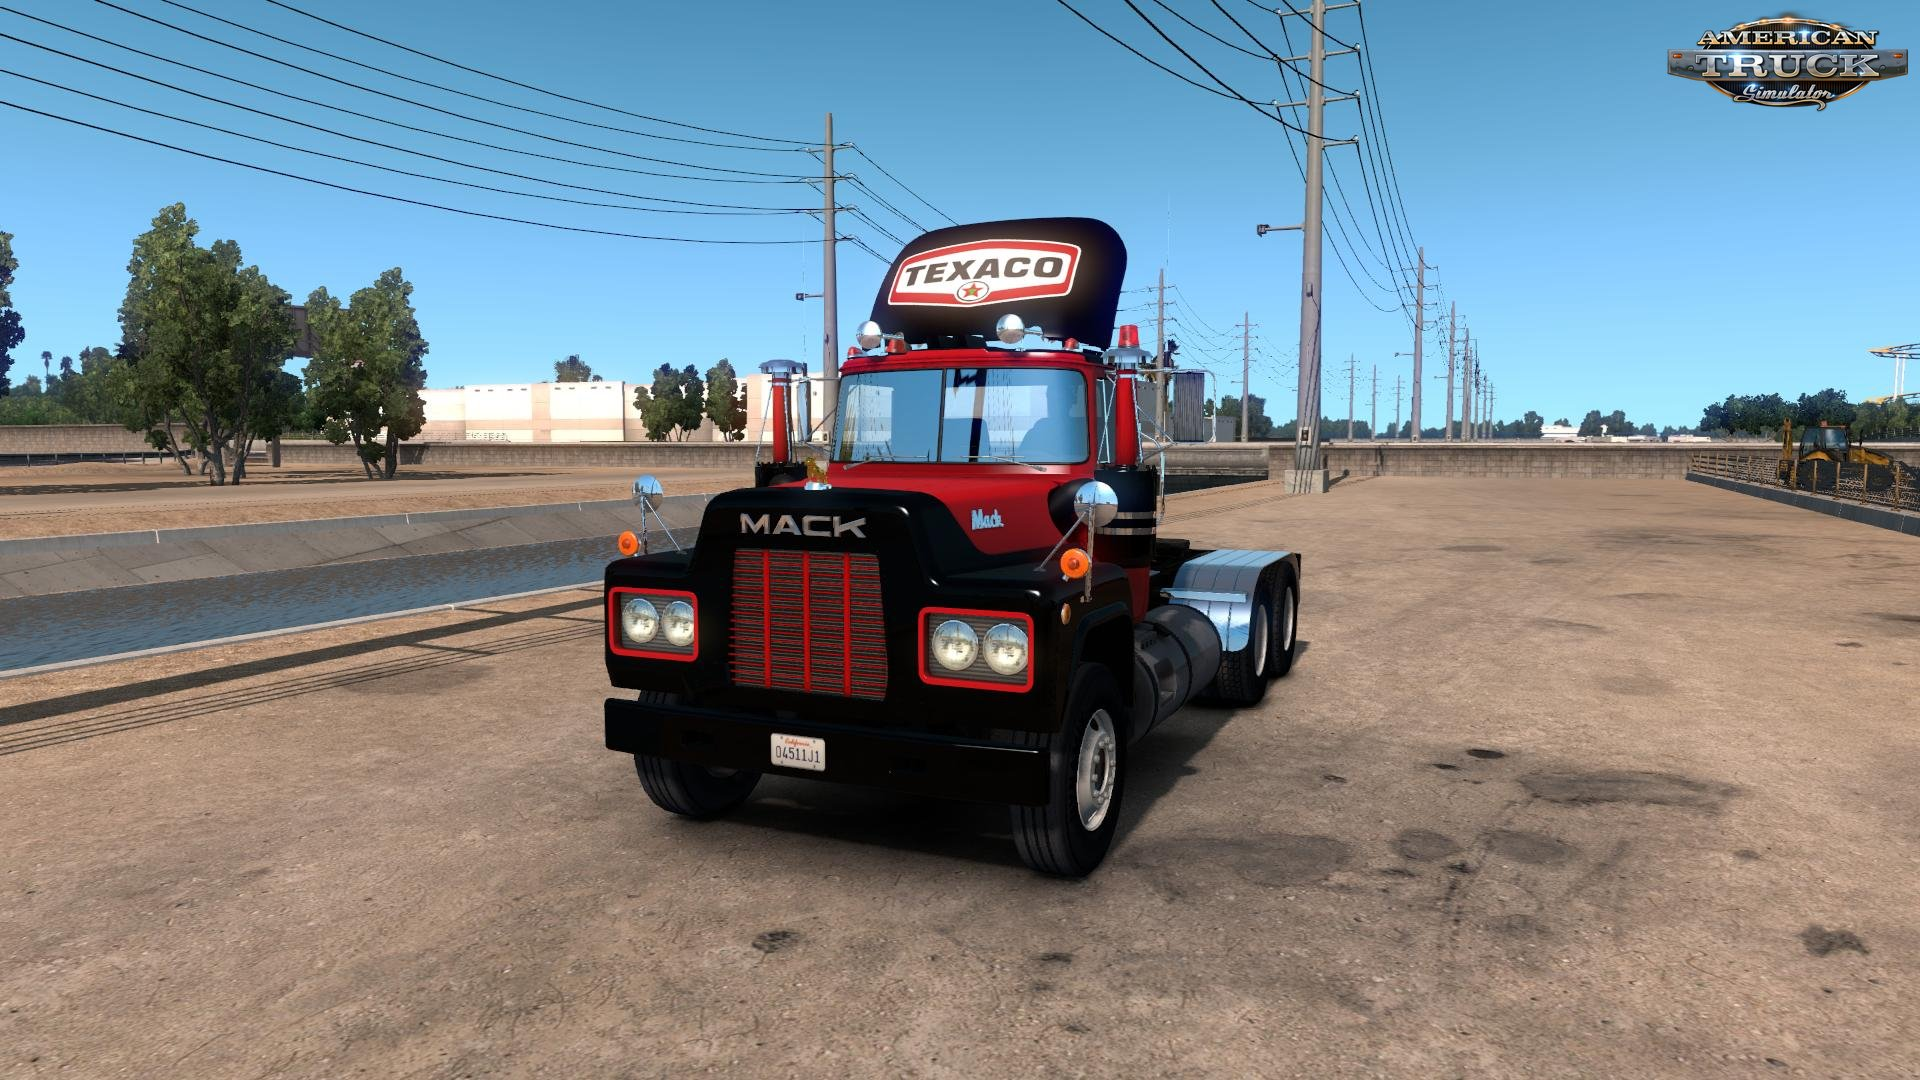 Texaco Skin for Mack R Truck v1.0 (1.31.x)